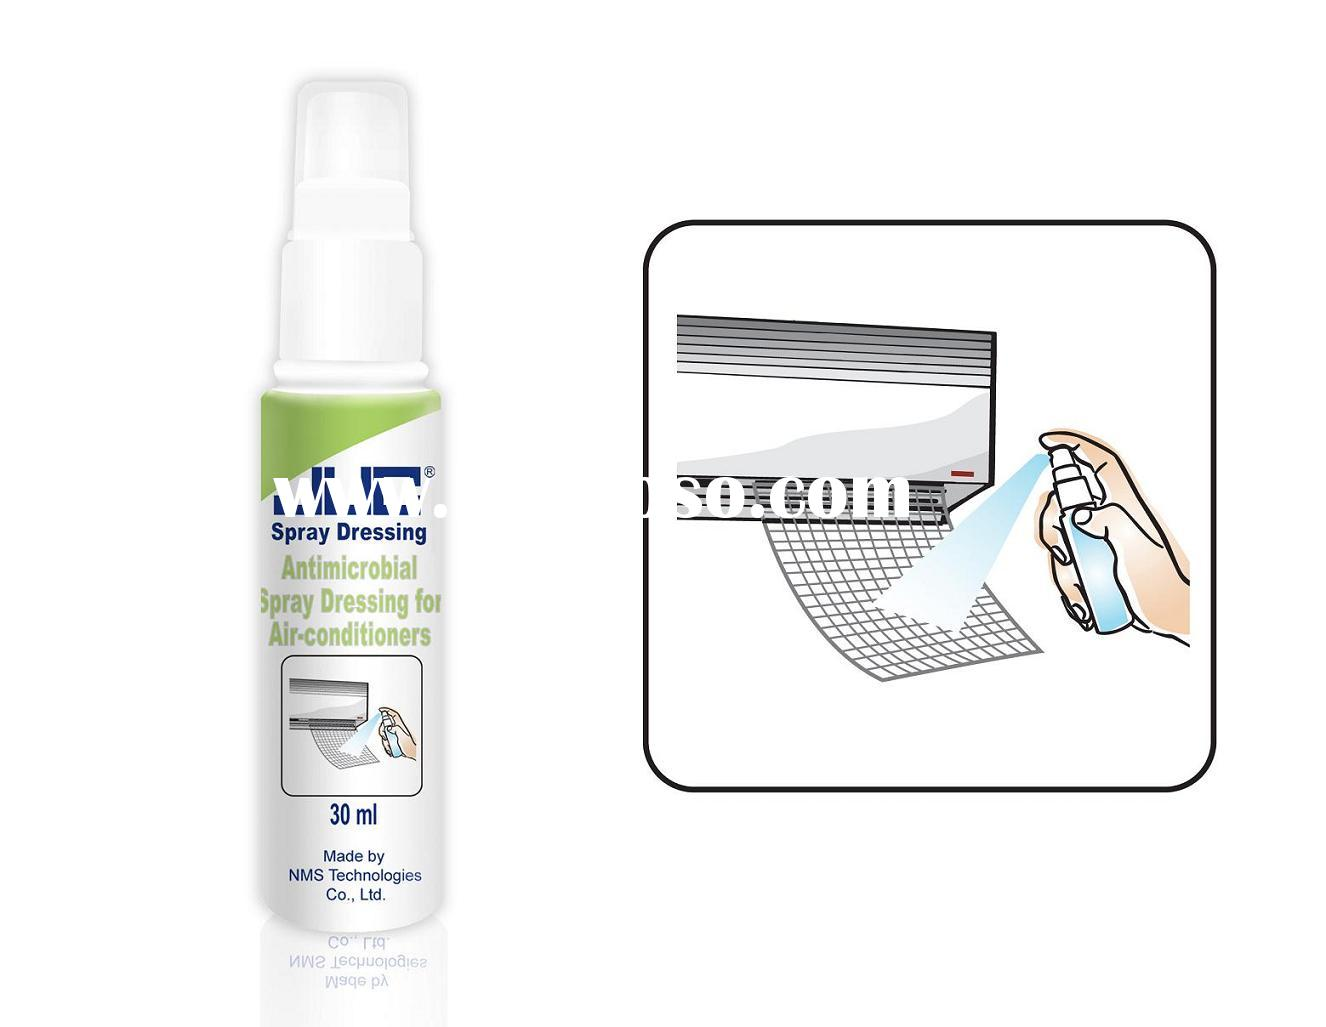 Antibacterial cleaning spray For Air-conditioners